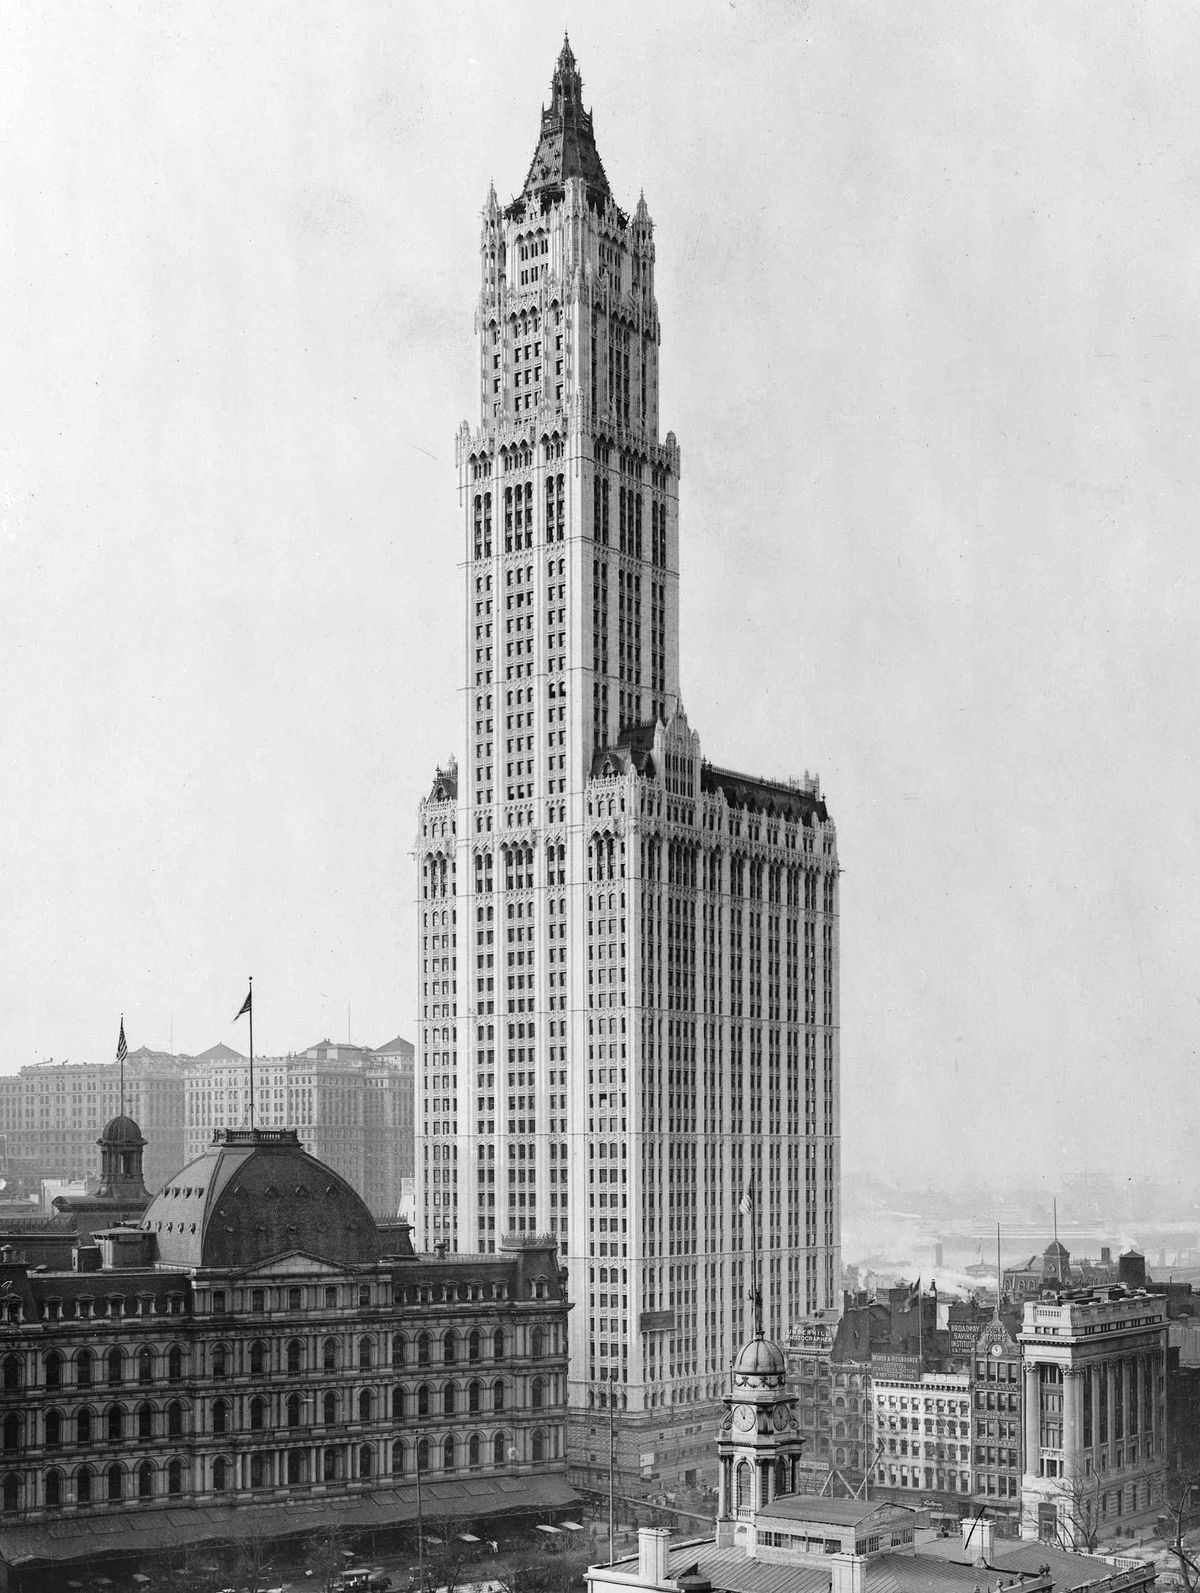 The Woolworth Building in New York, the tallest in the world when it opened in 1914.